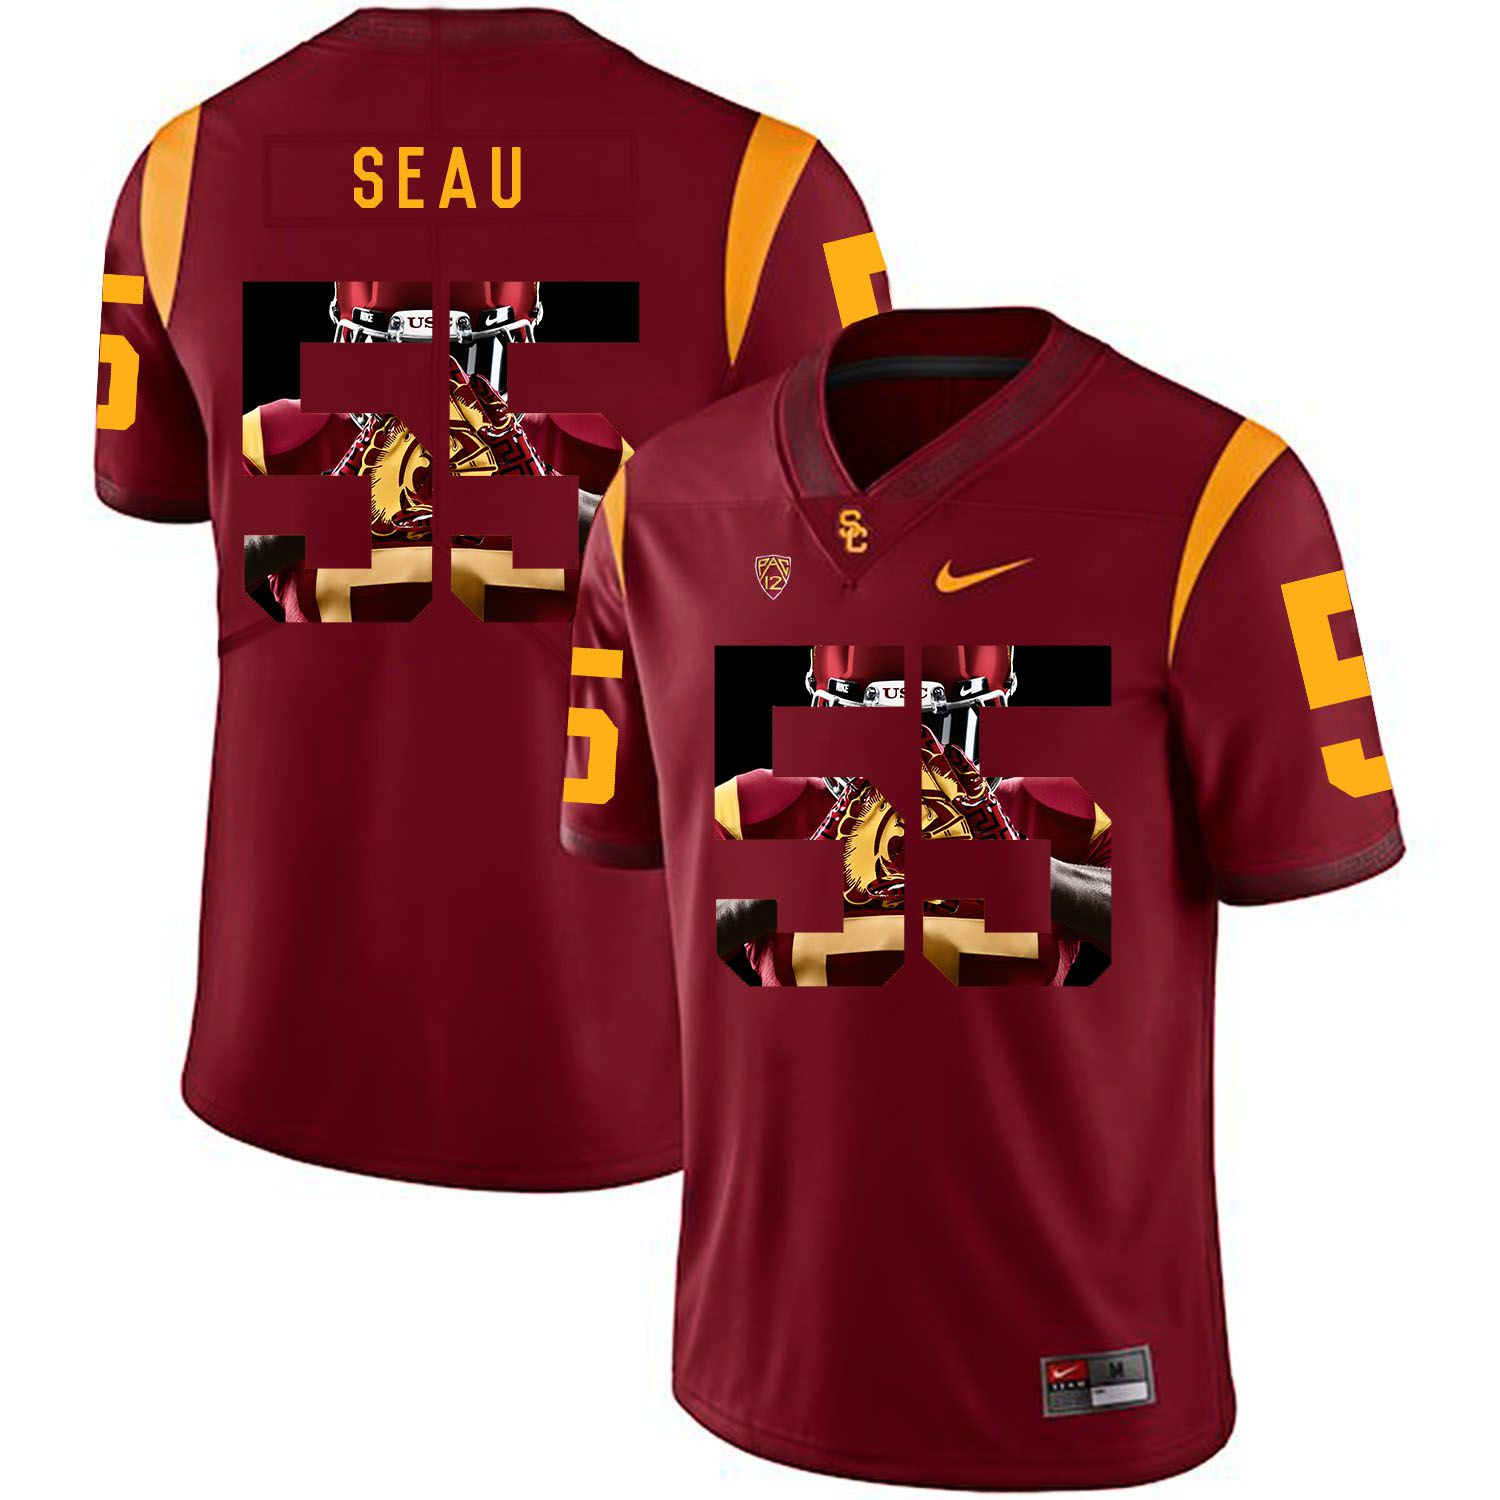 Men USC Trojans 55 Seau Red Fashion Edition Customized NCAA Jerseys